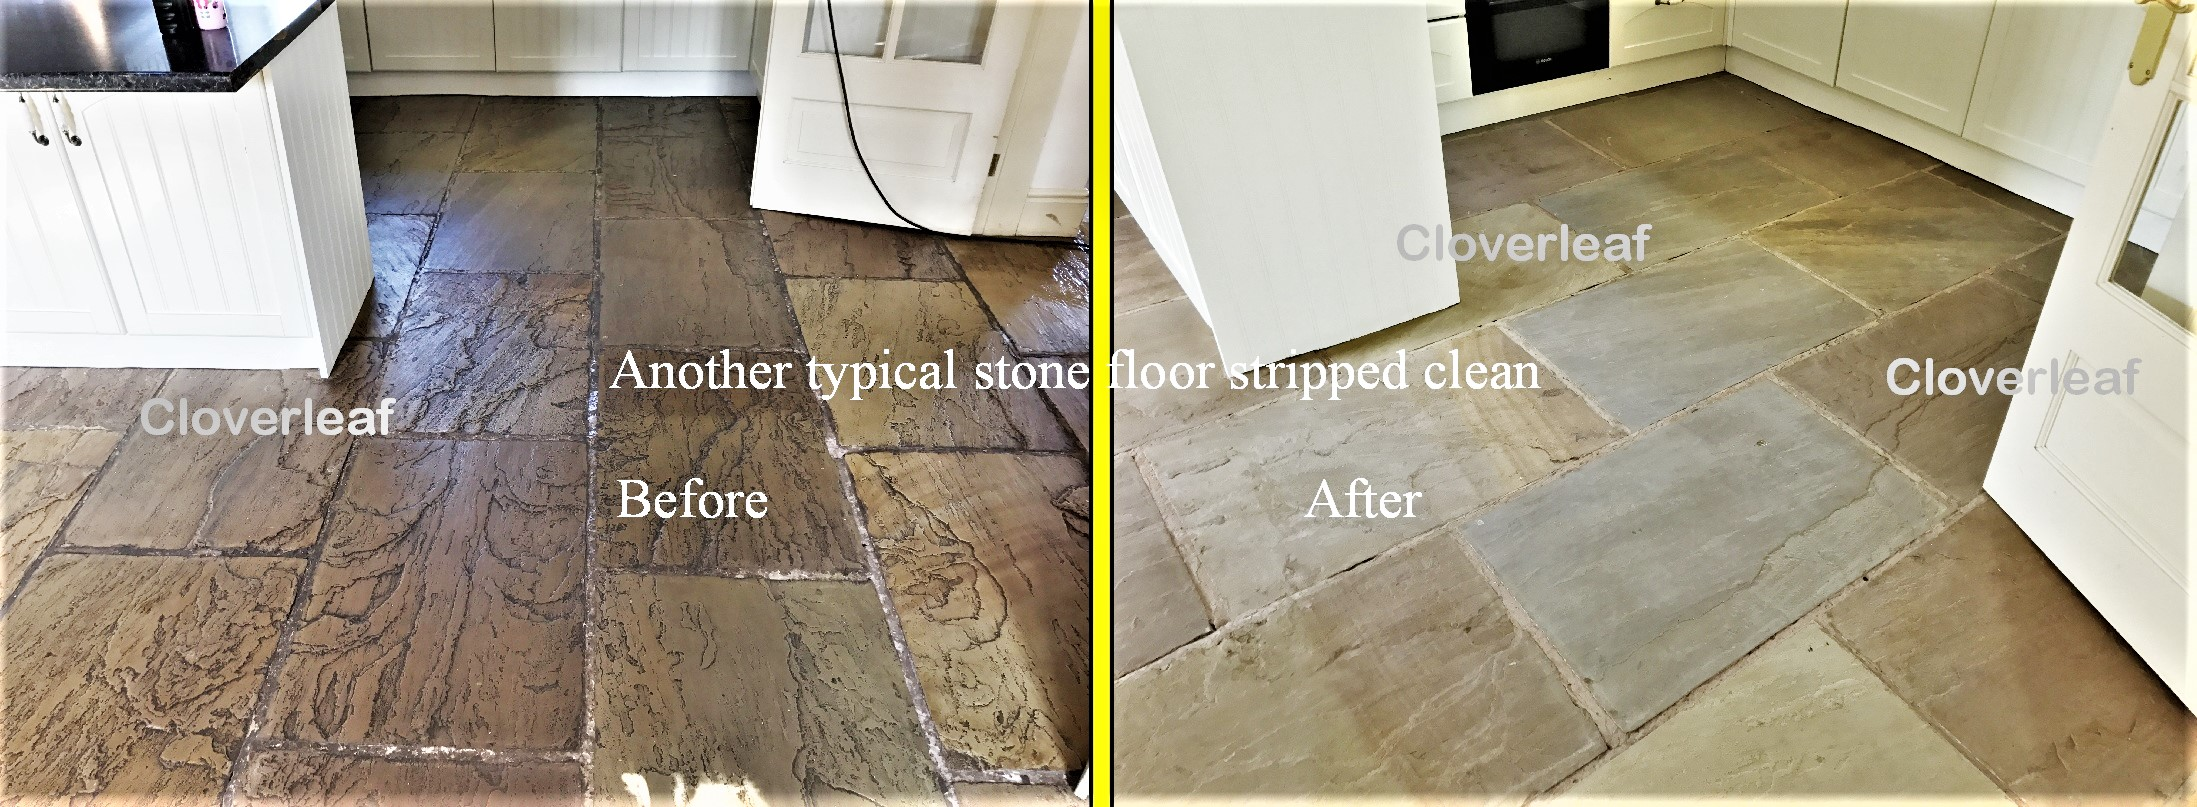 York Stone cleaning Cheshire